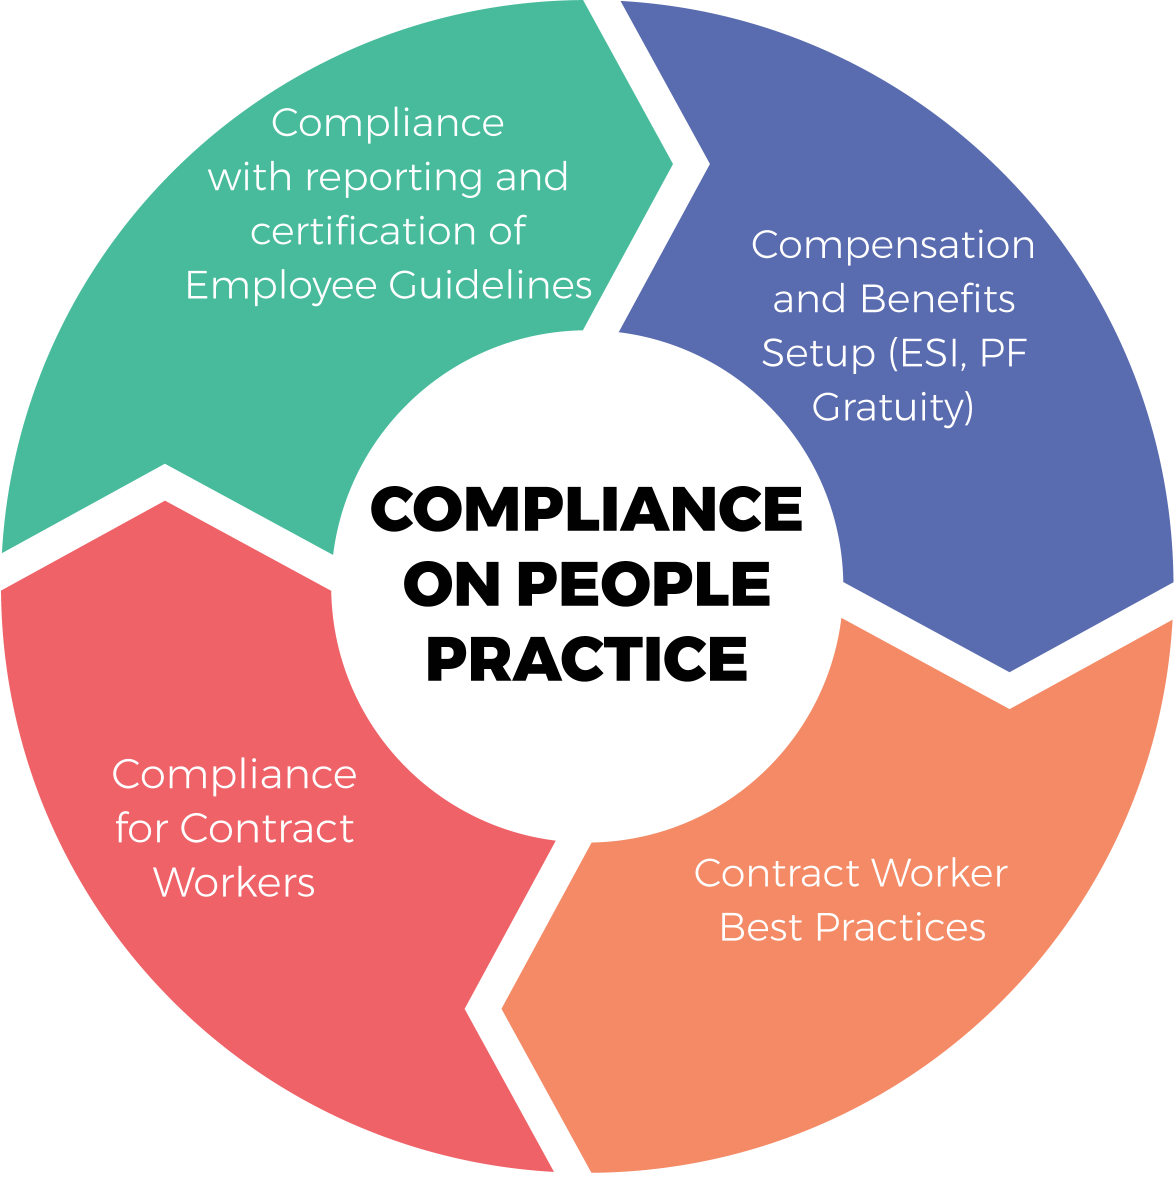 Compliance on People Practice of Shrofile